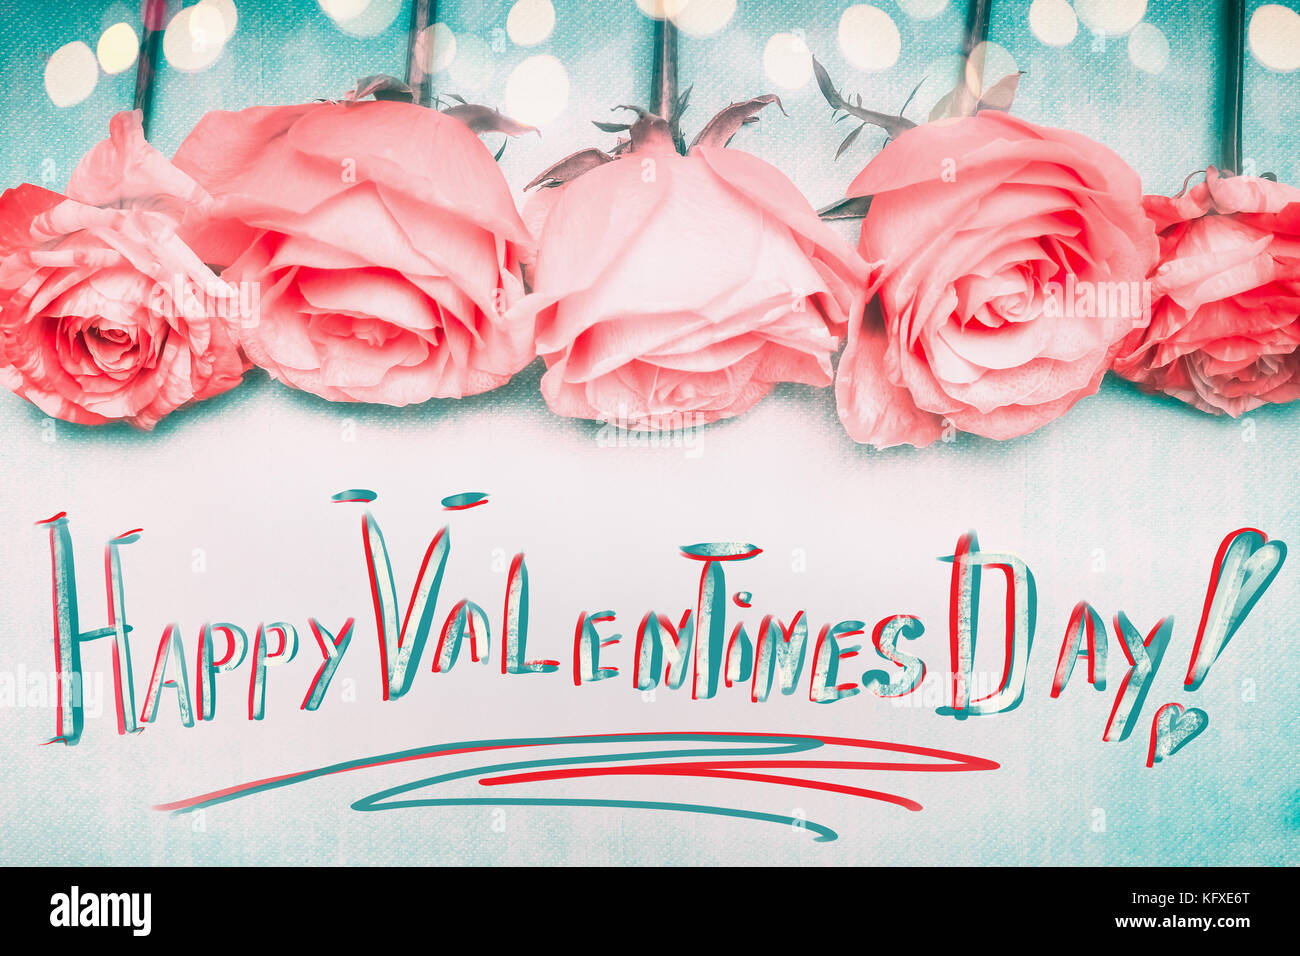 Happy Valentines Day Greeting Handwritten With Pink Roses And